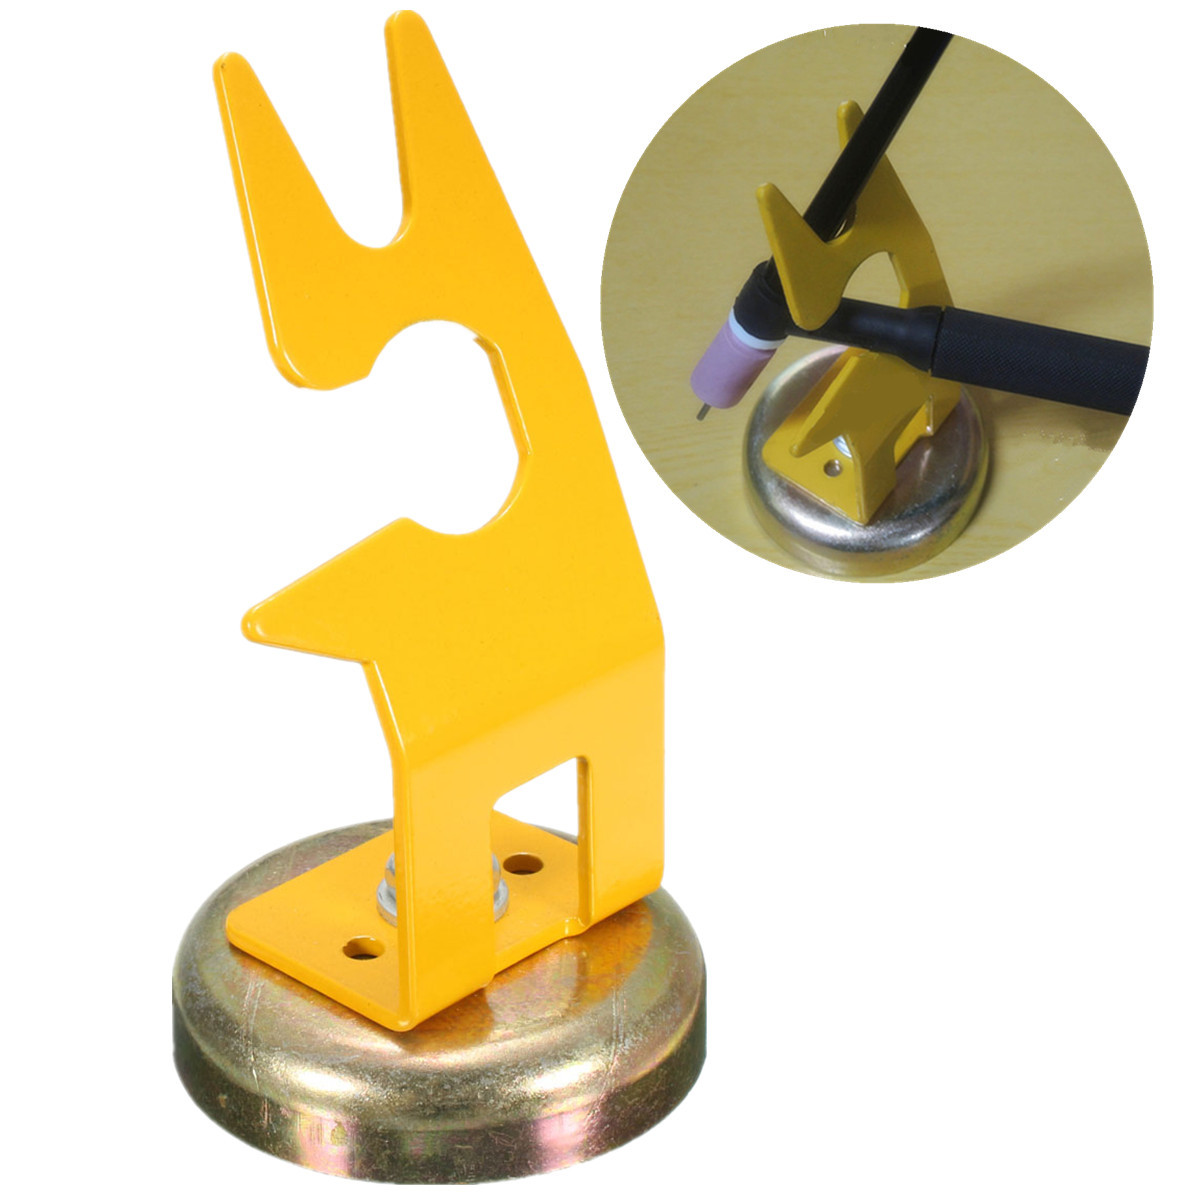 Magnetic TIG Welding Torch Stand / Holder / Support For Tig Series Torch